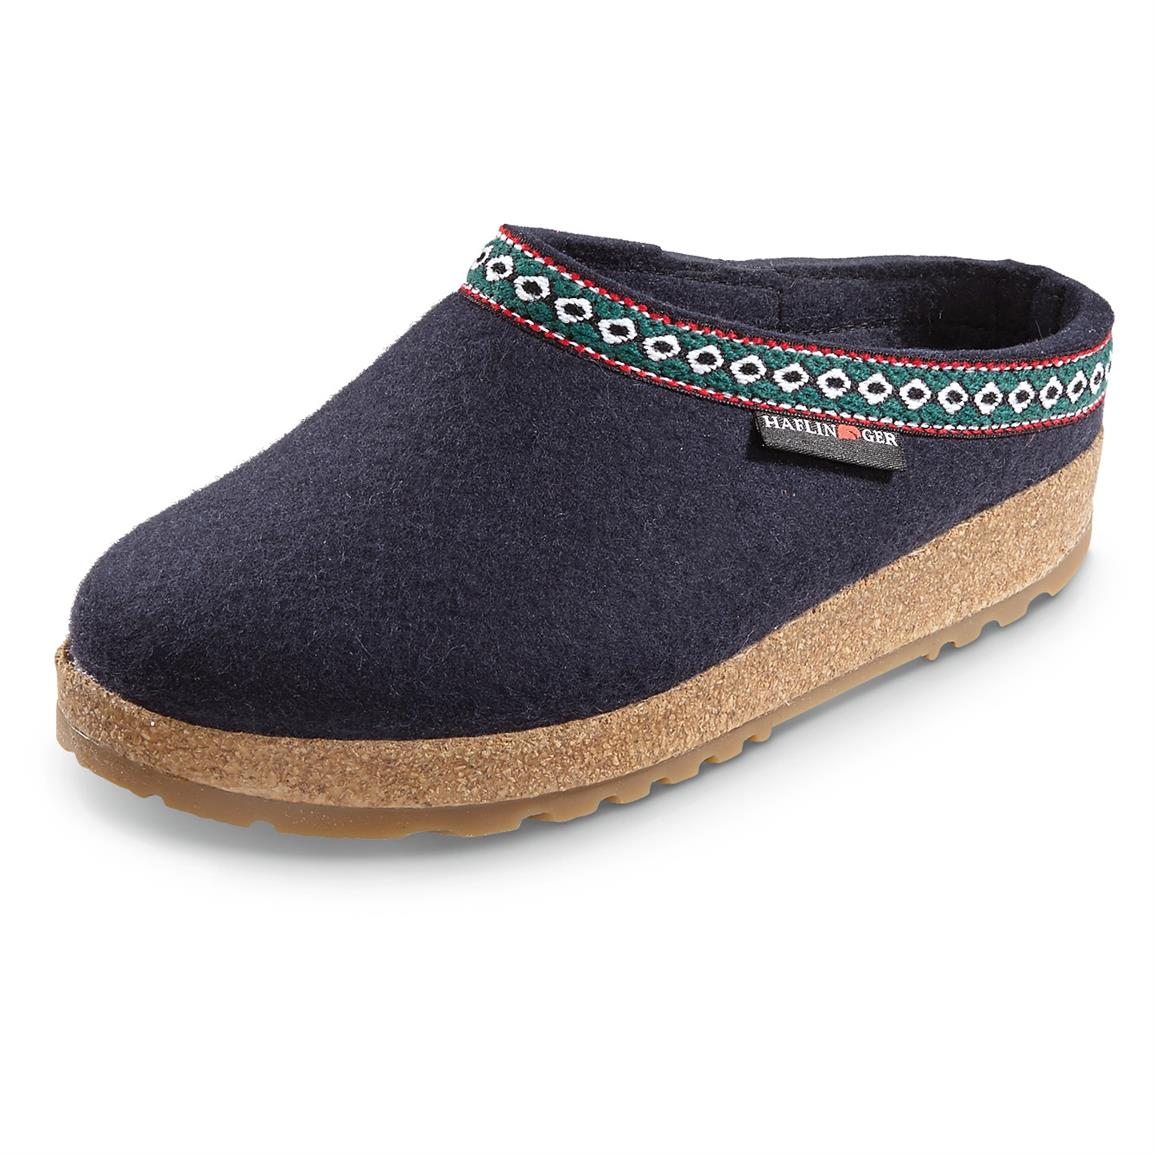 Men's and Women's Haflinger Classic Grizzly Clogs, Navy